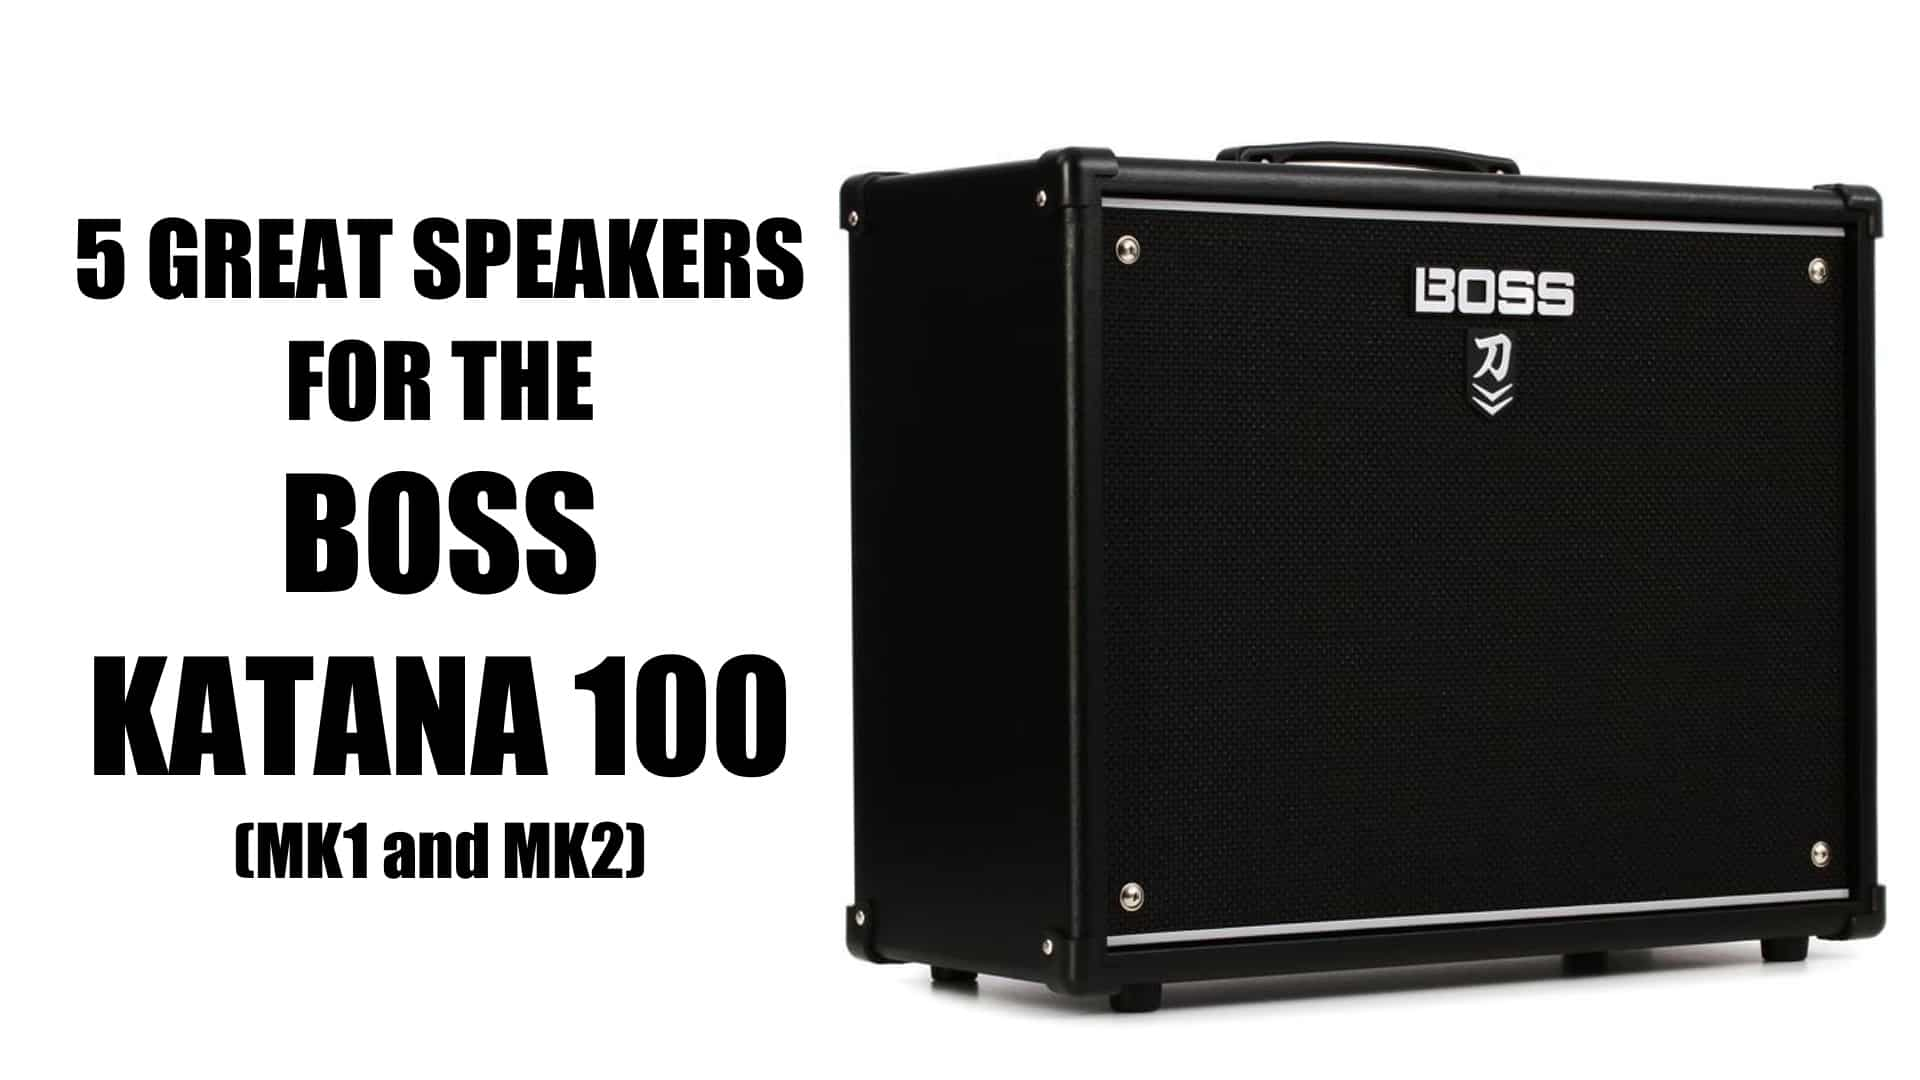 The Best Replacement Speakers for a Boss Katana 100